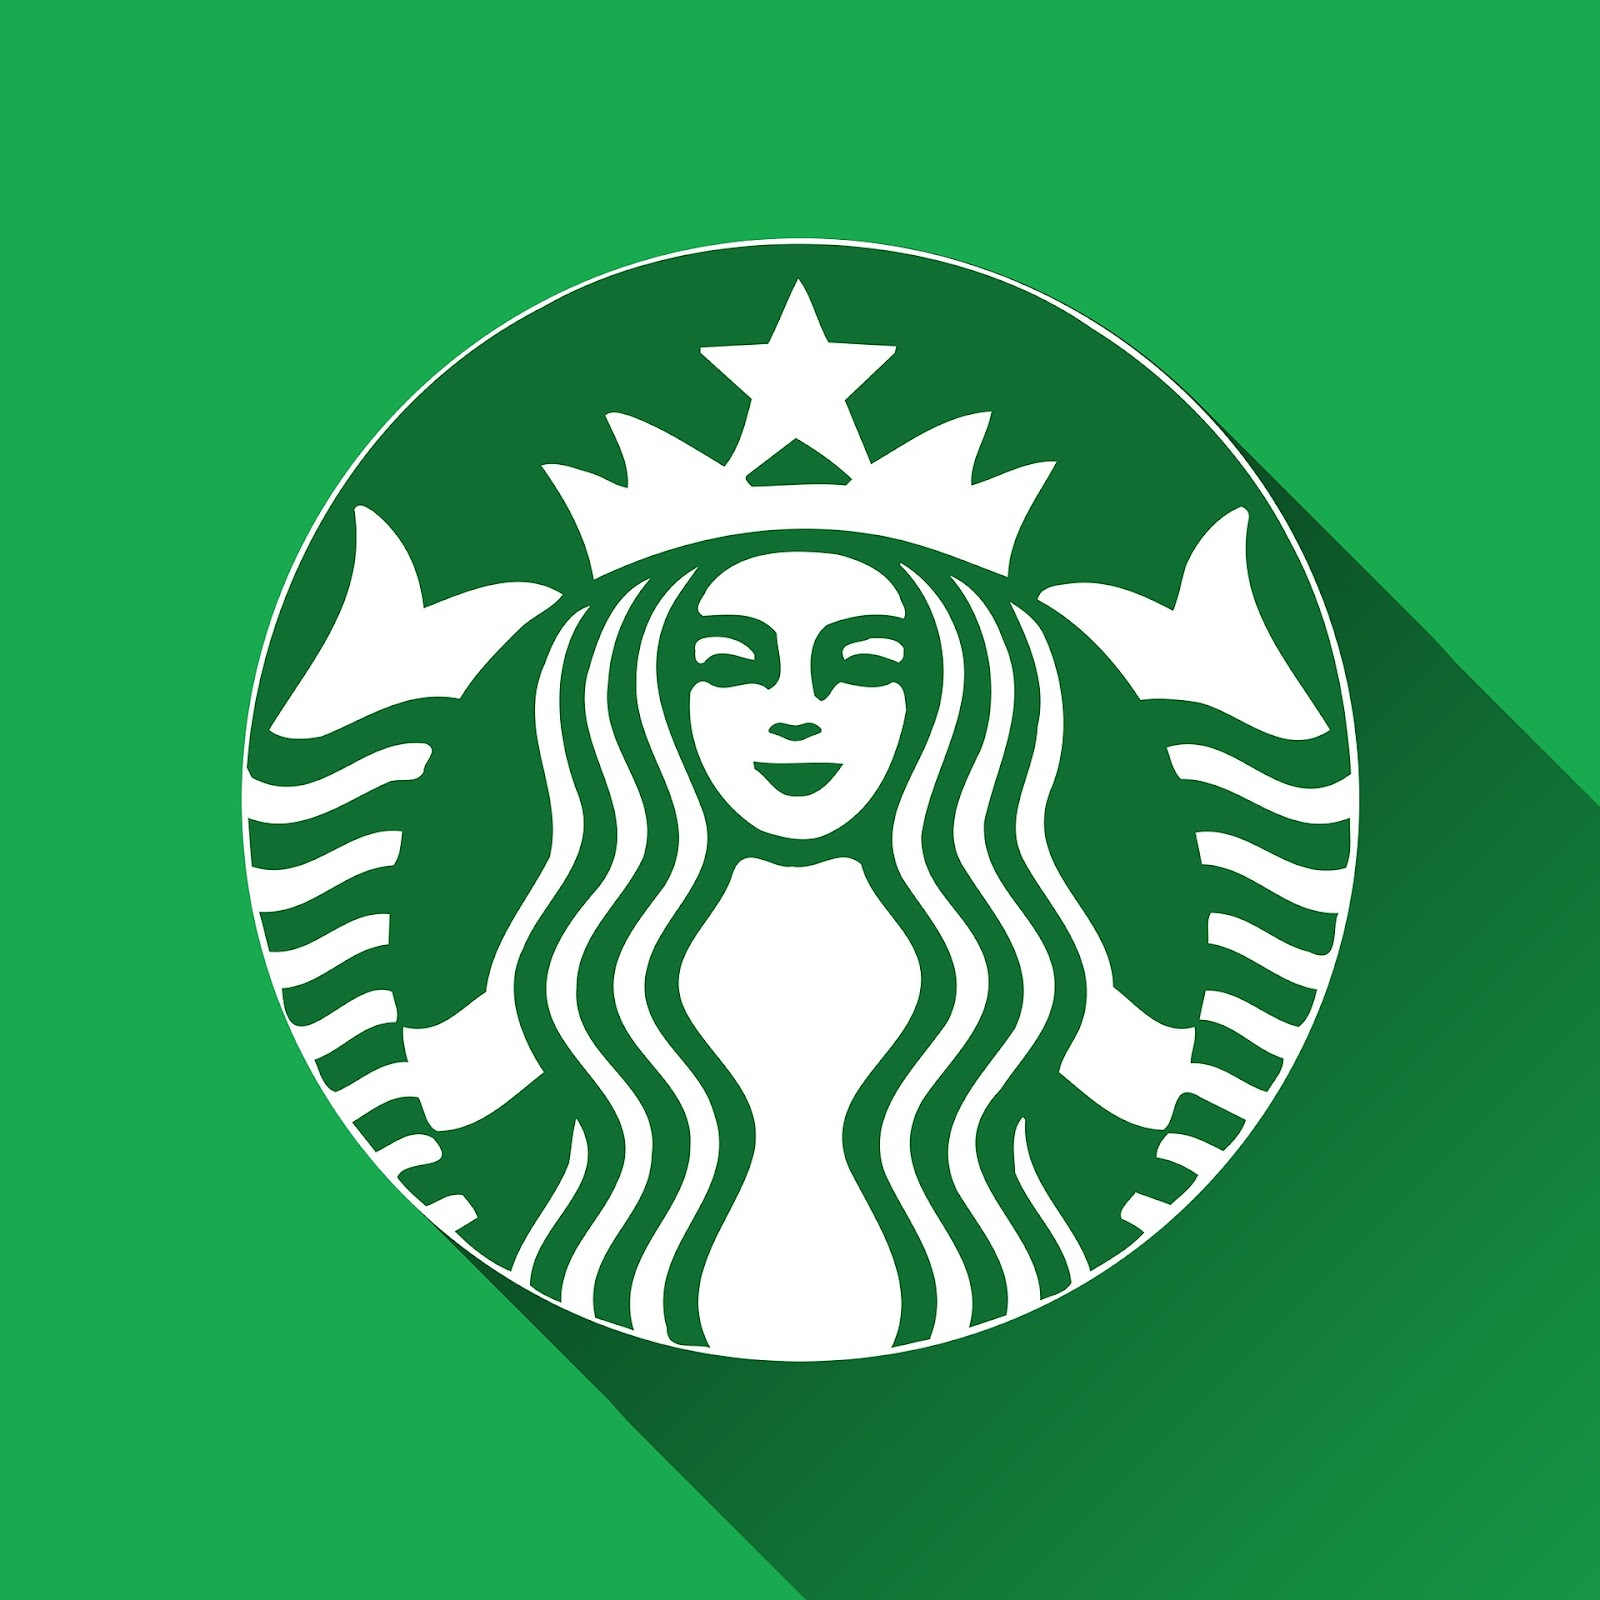 green color palette starbucks logo